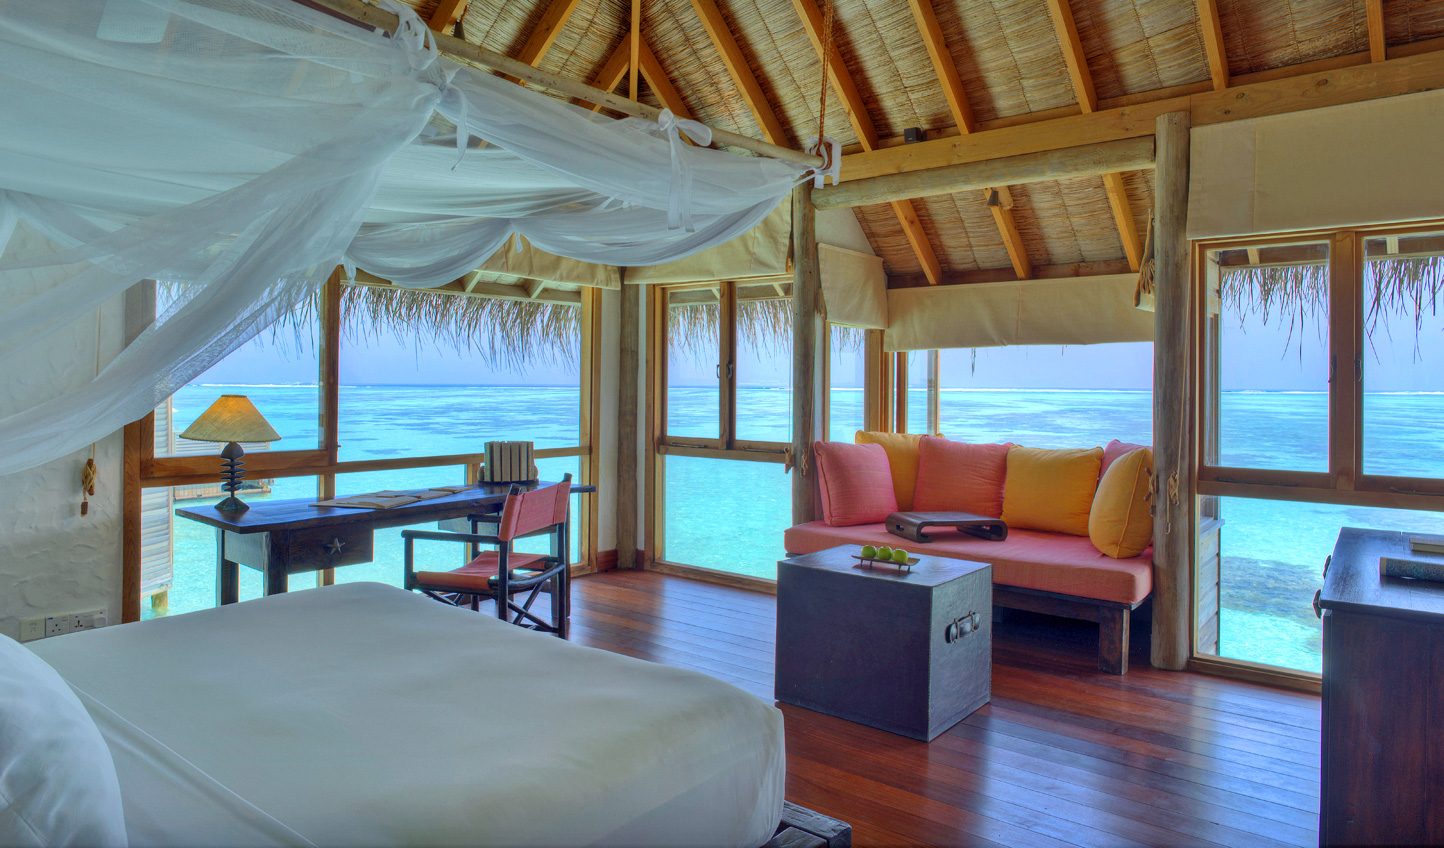 Wake up to calming views over the Indian Ocean